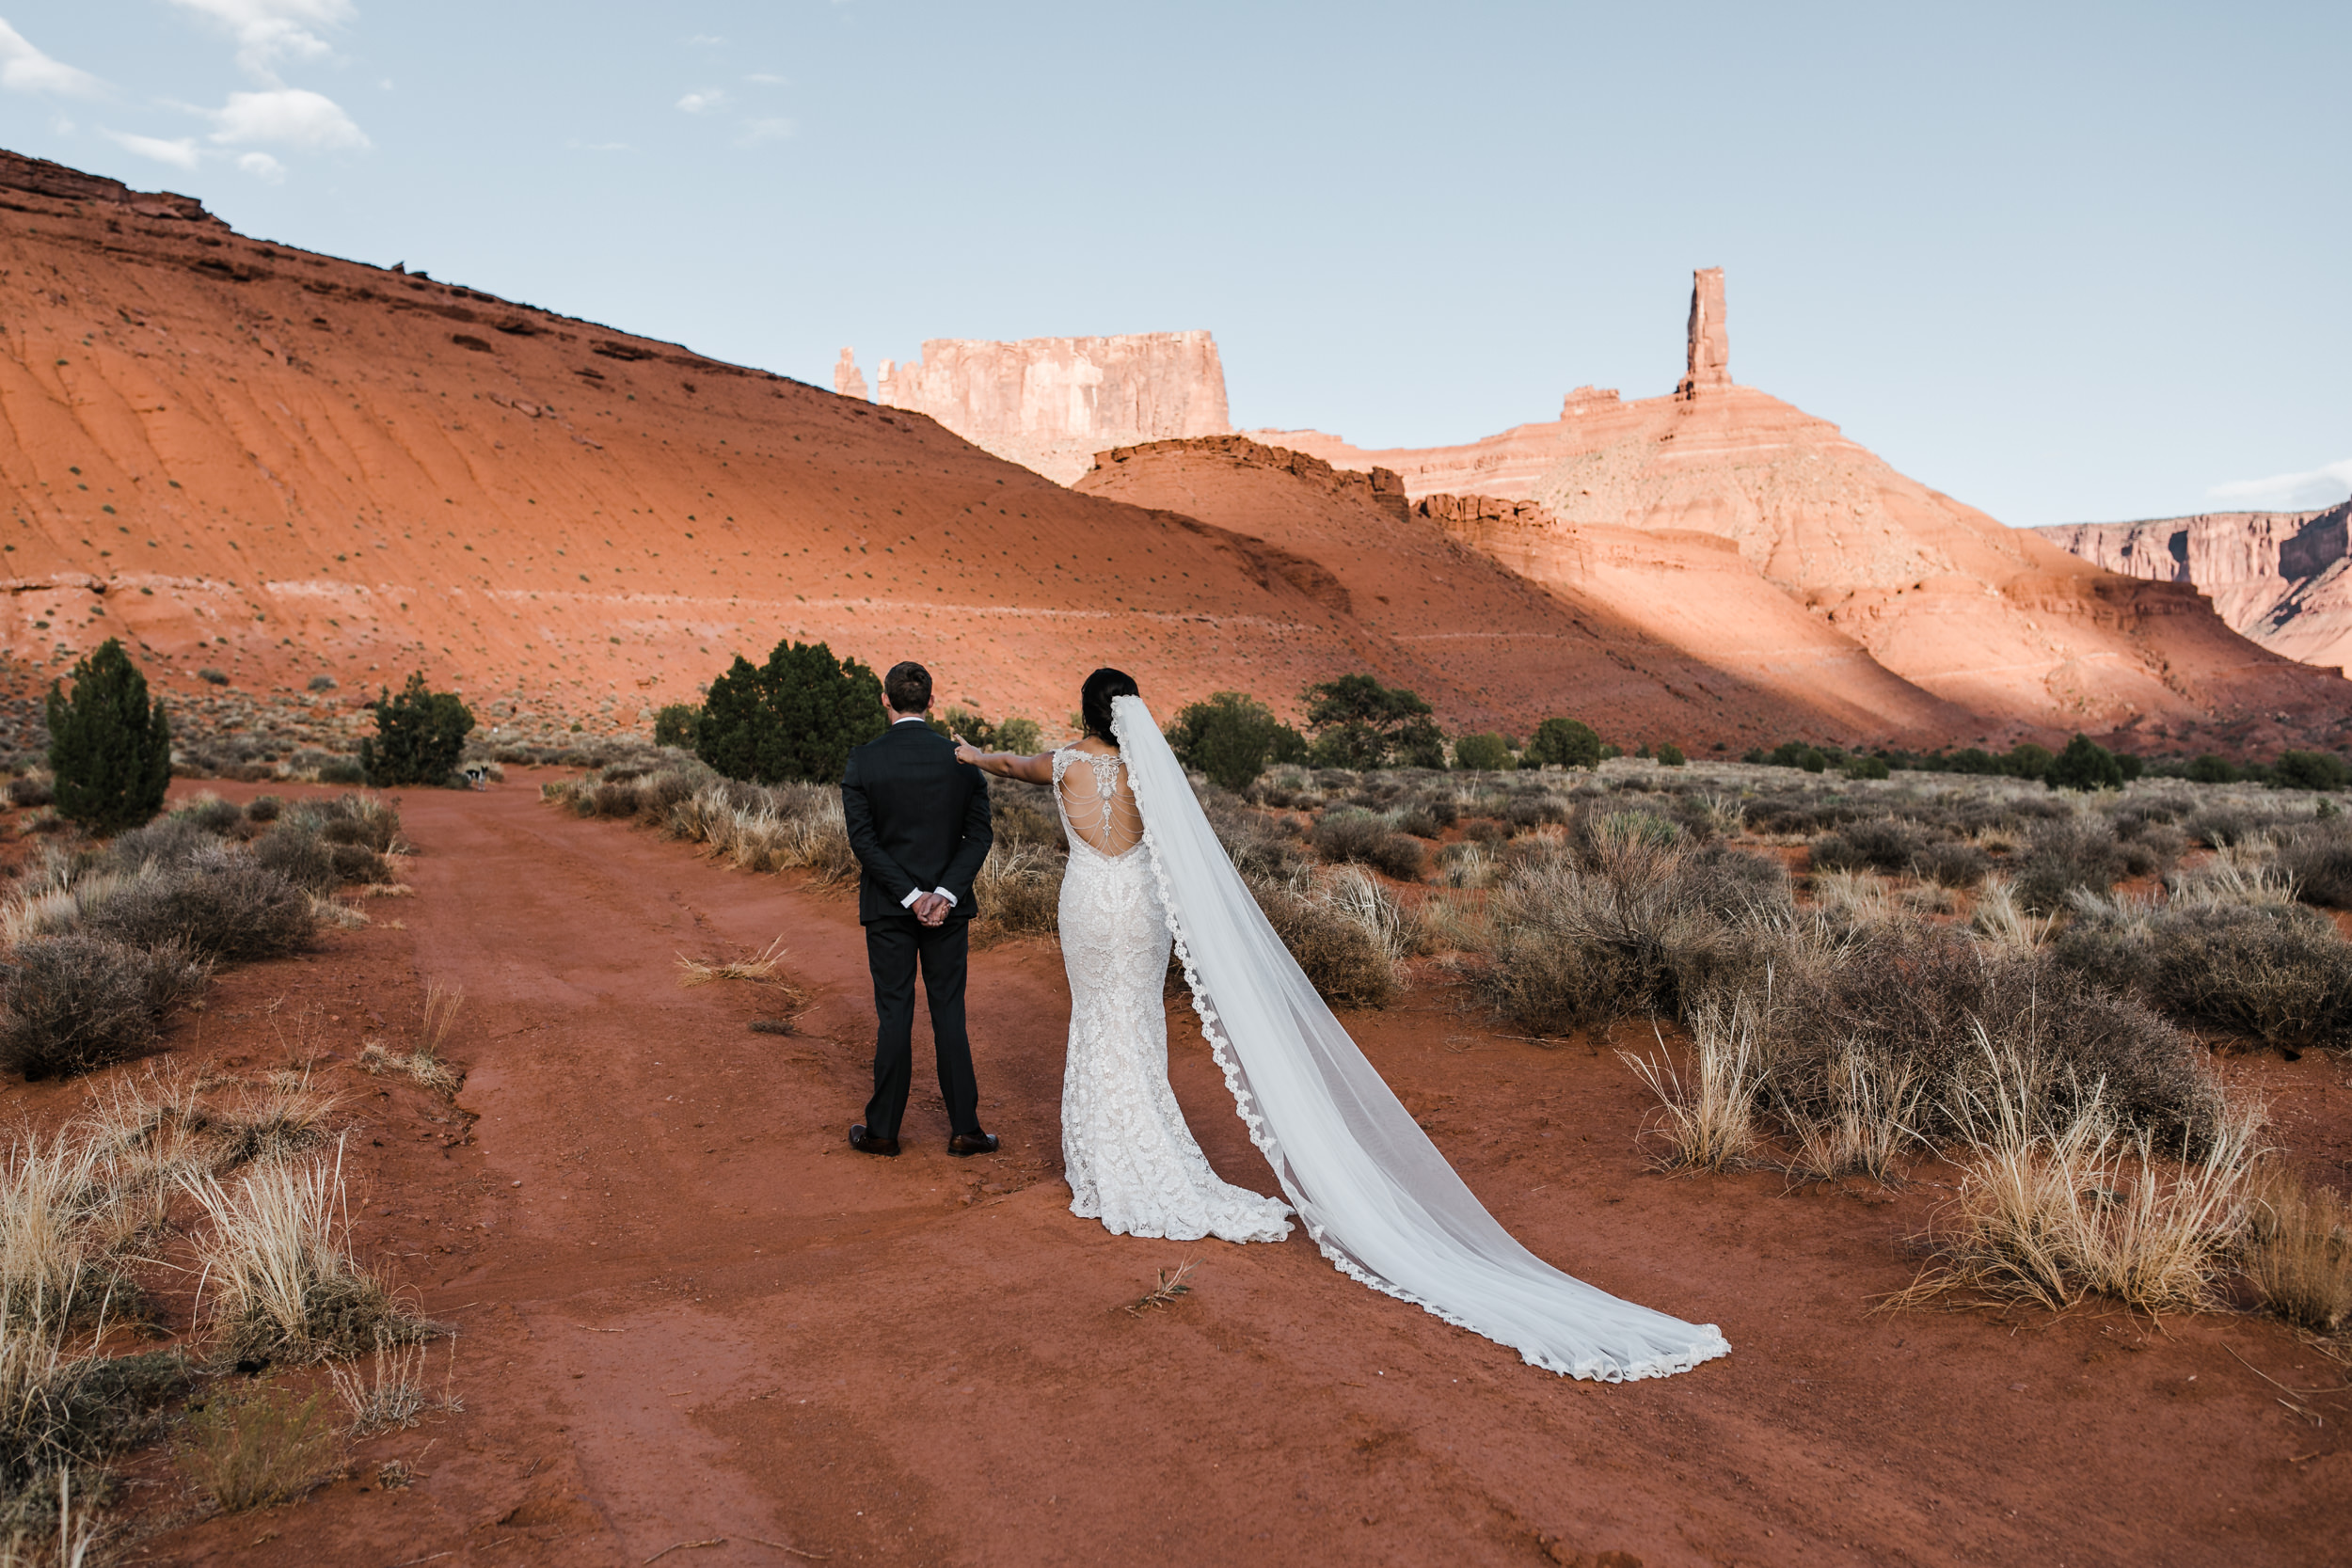 moab, utah wedding photo session | galia lahav bride | bridals in the desert | the hearnes adventure photography